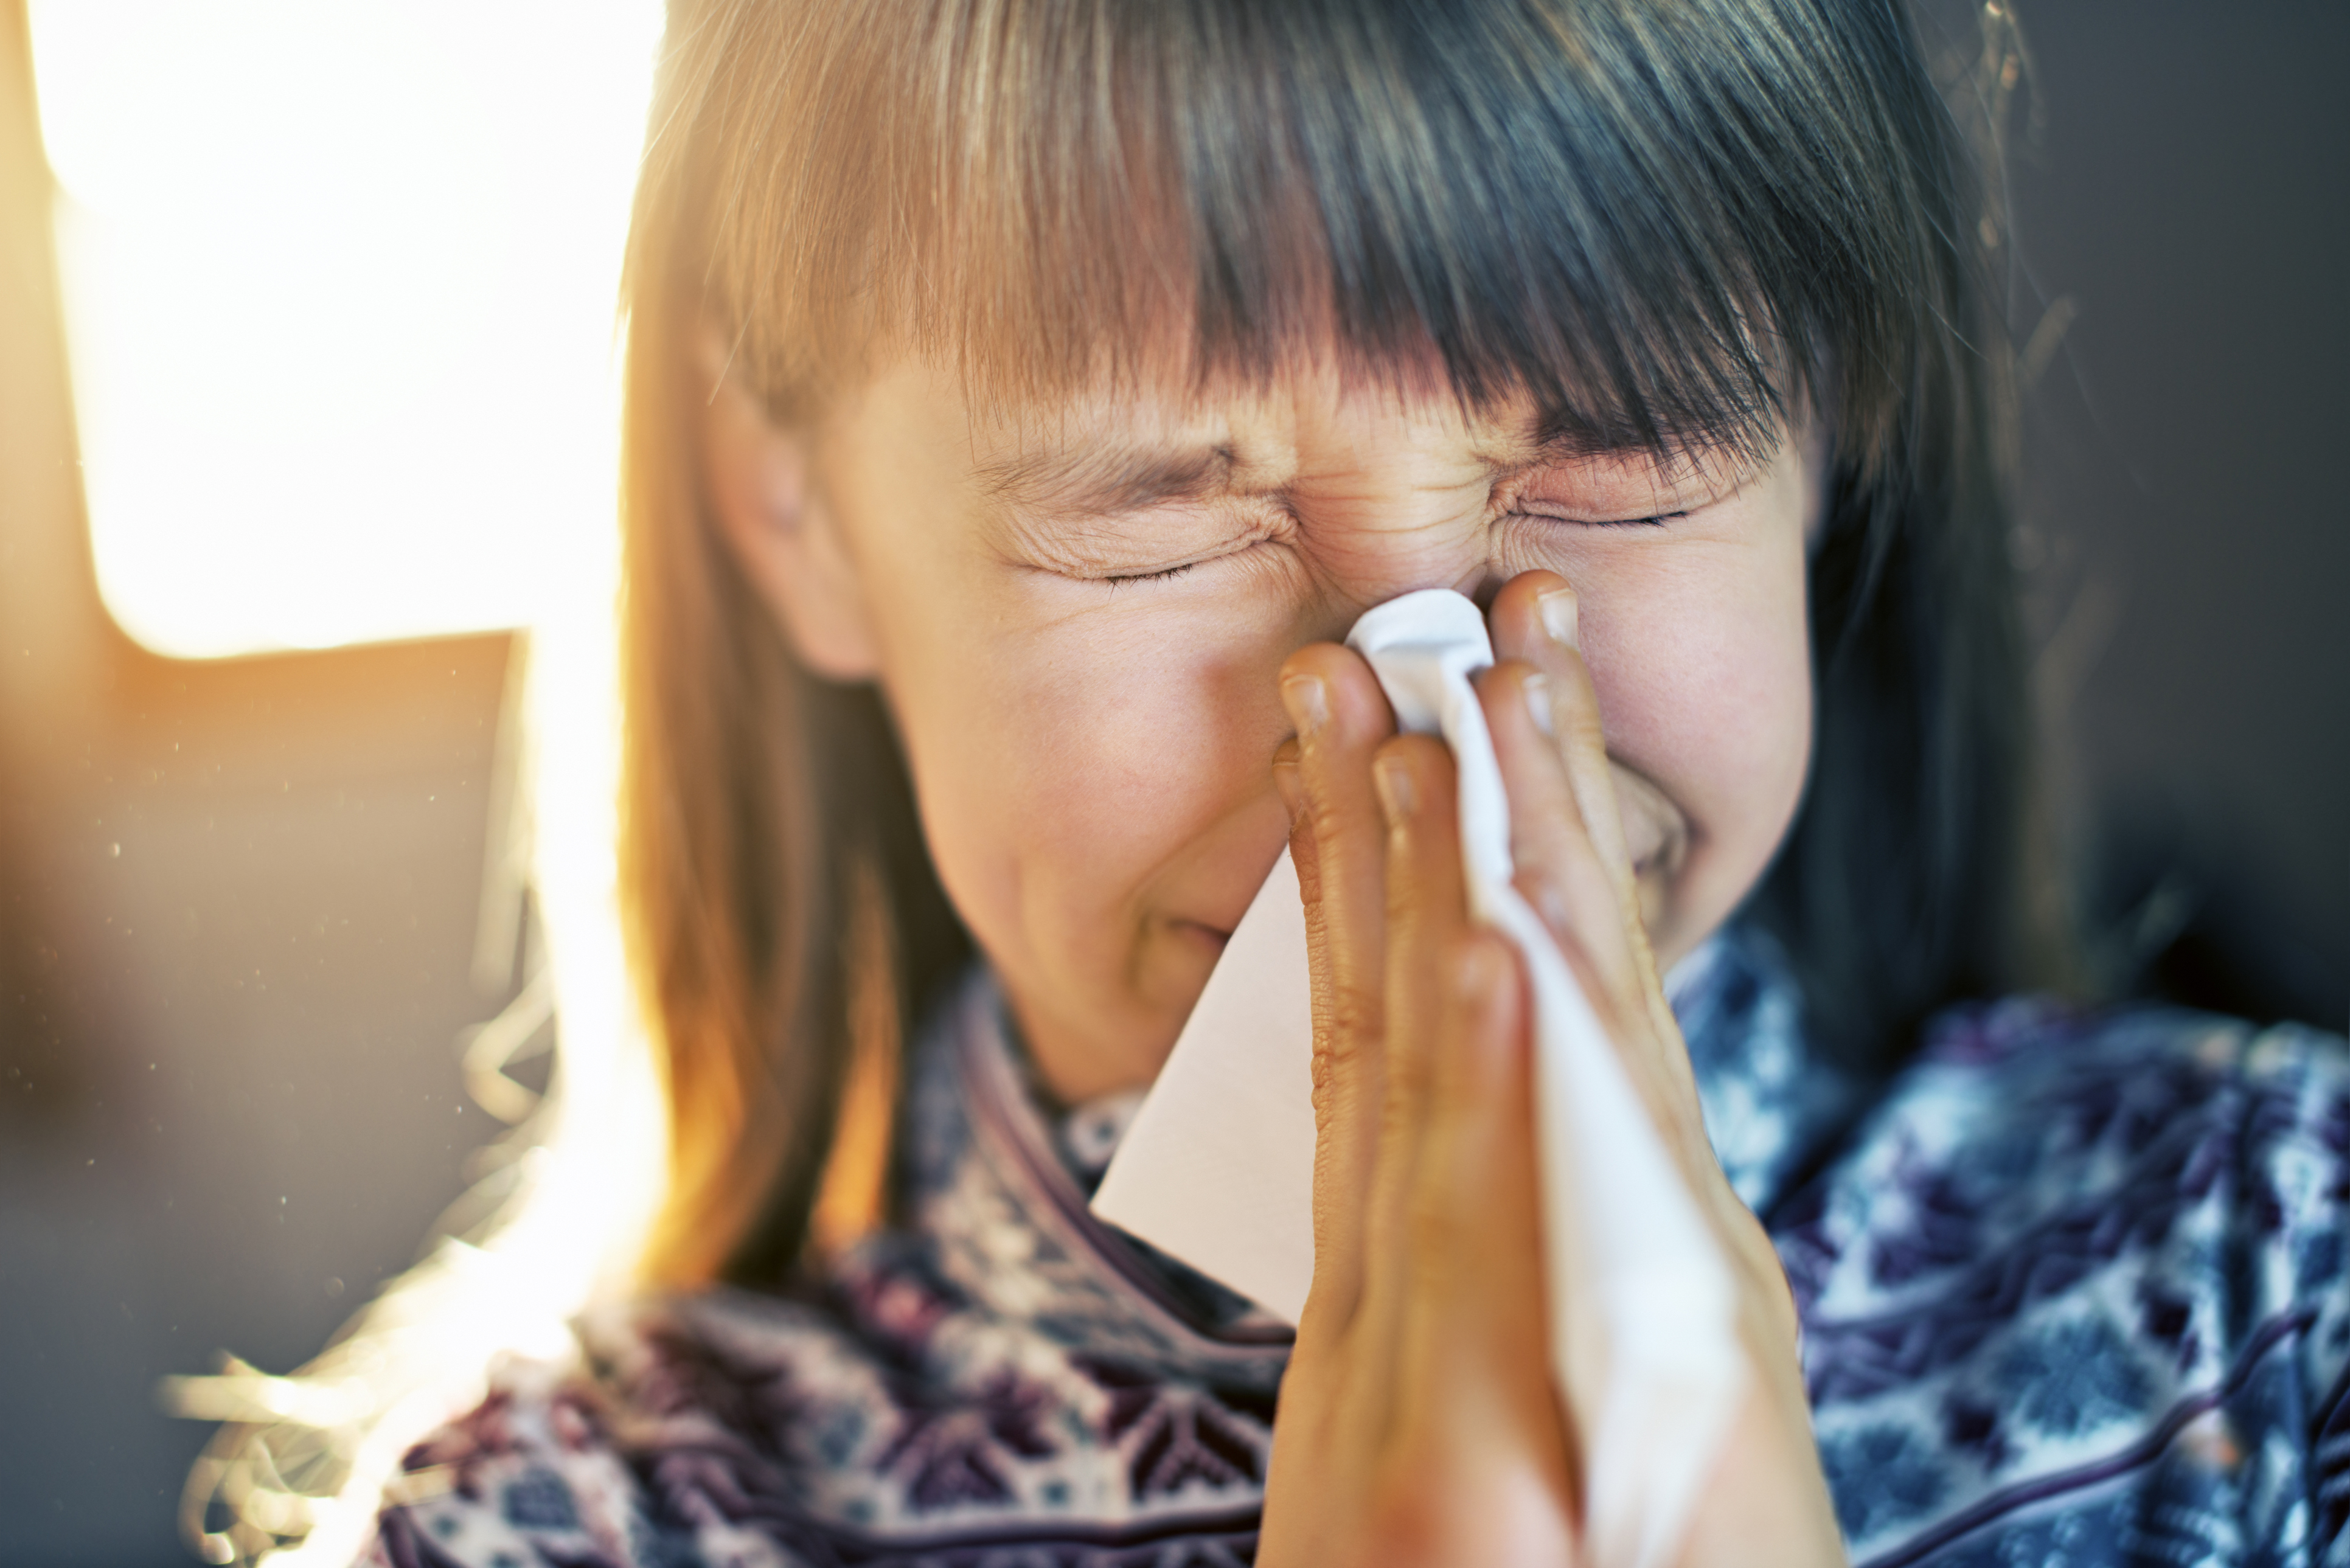 Little girl in dusty home cleaning nose. Dust particles visible in sun rays. The girl aged 9 cleaning her runny nose with a tissue.